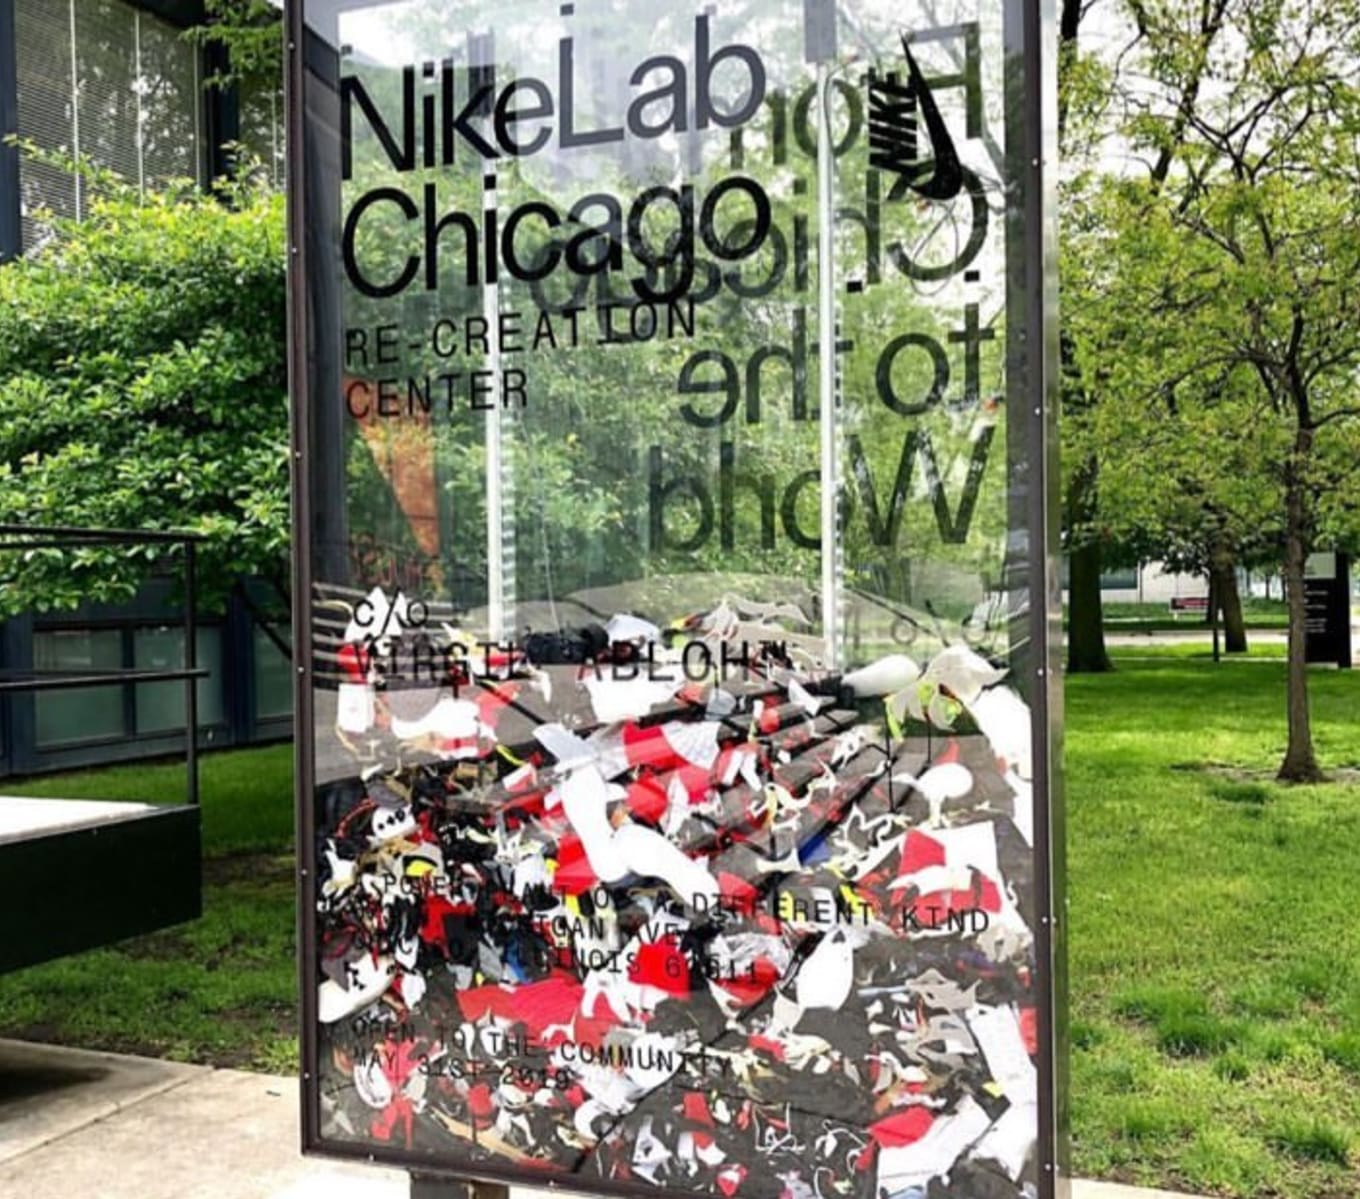 Virgil Abloh Teasing NikeLab Project at His Old School